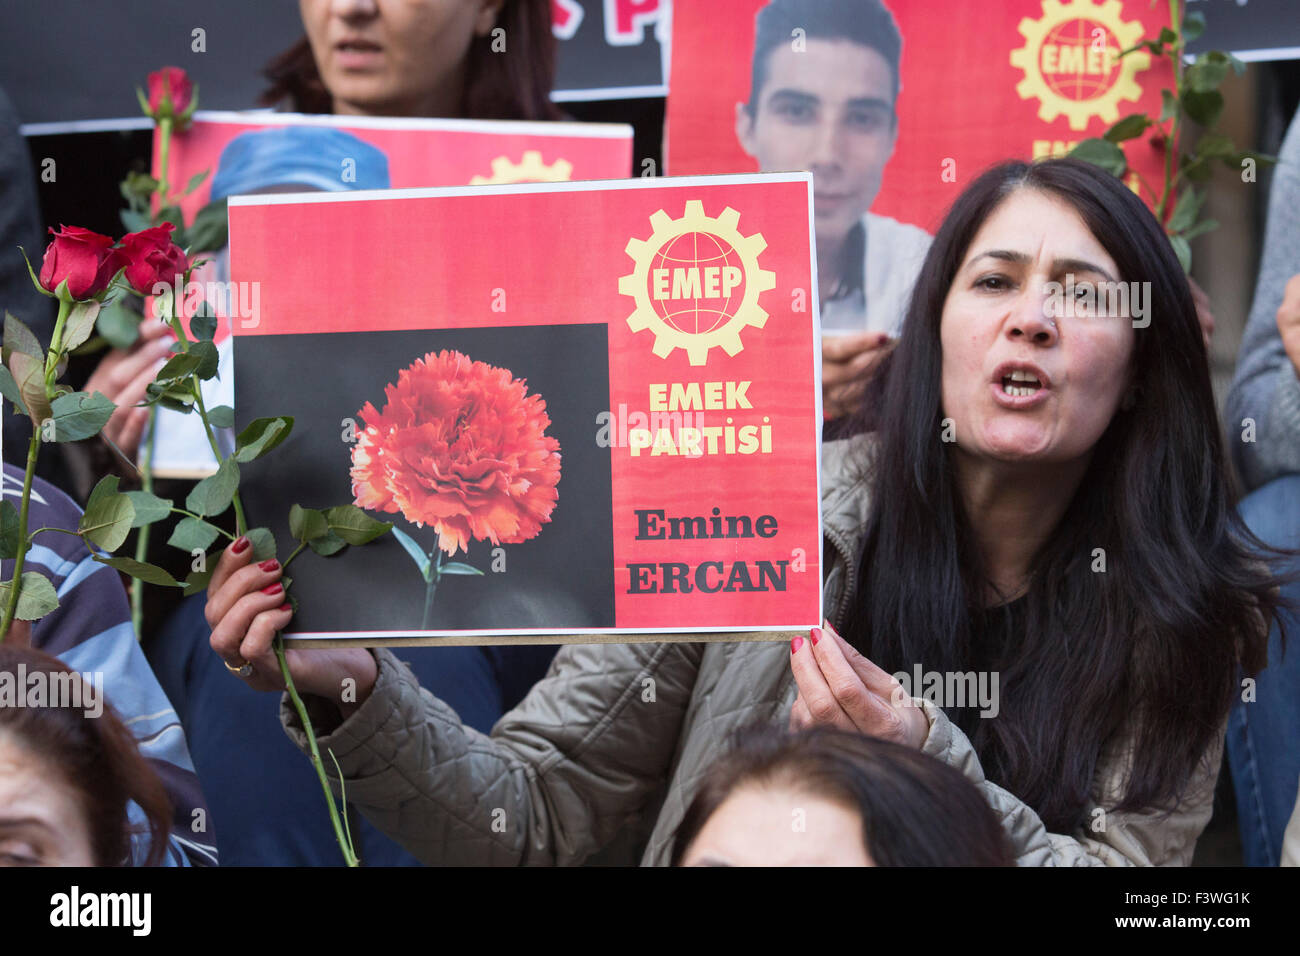 London, UK. 11/10/2015. Outside the BBC headquarters, protesters from Emek Partisi hold up pictures of people killed Stock Photo